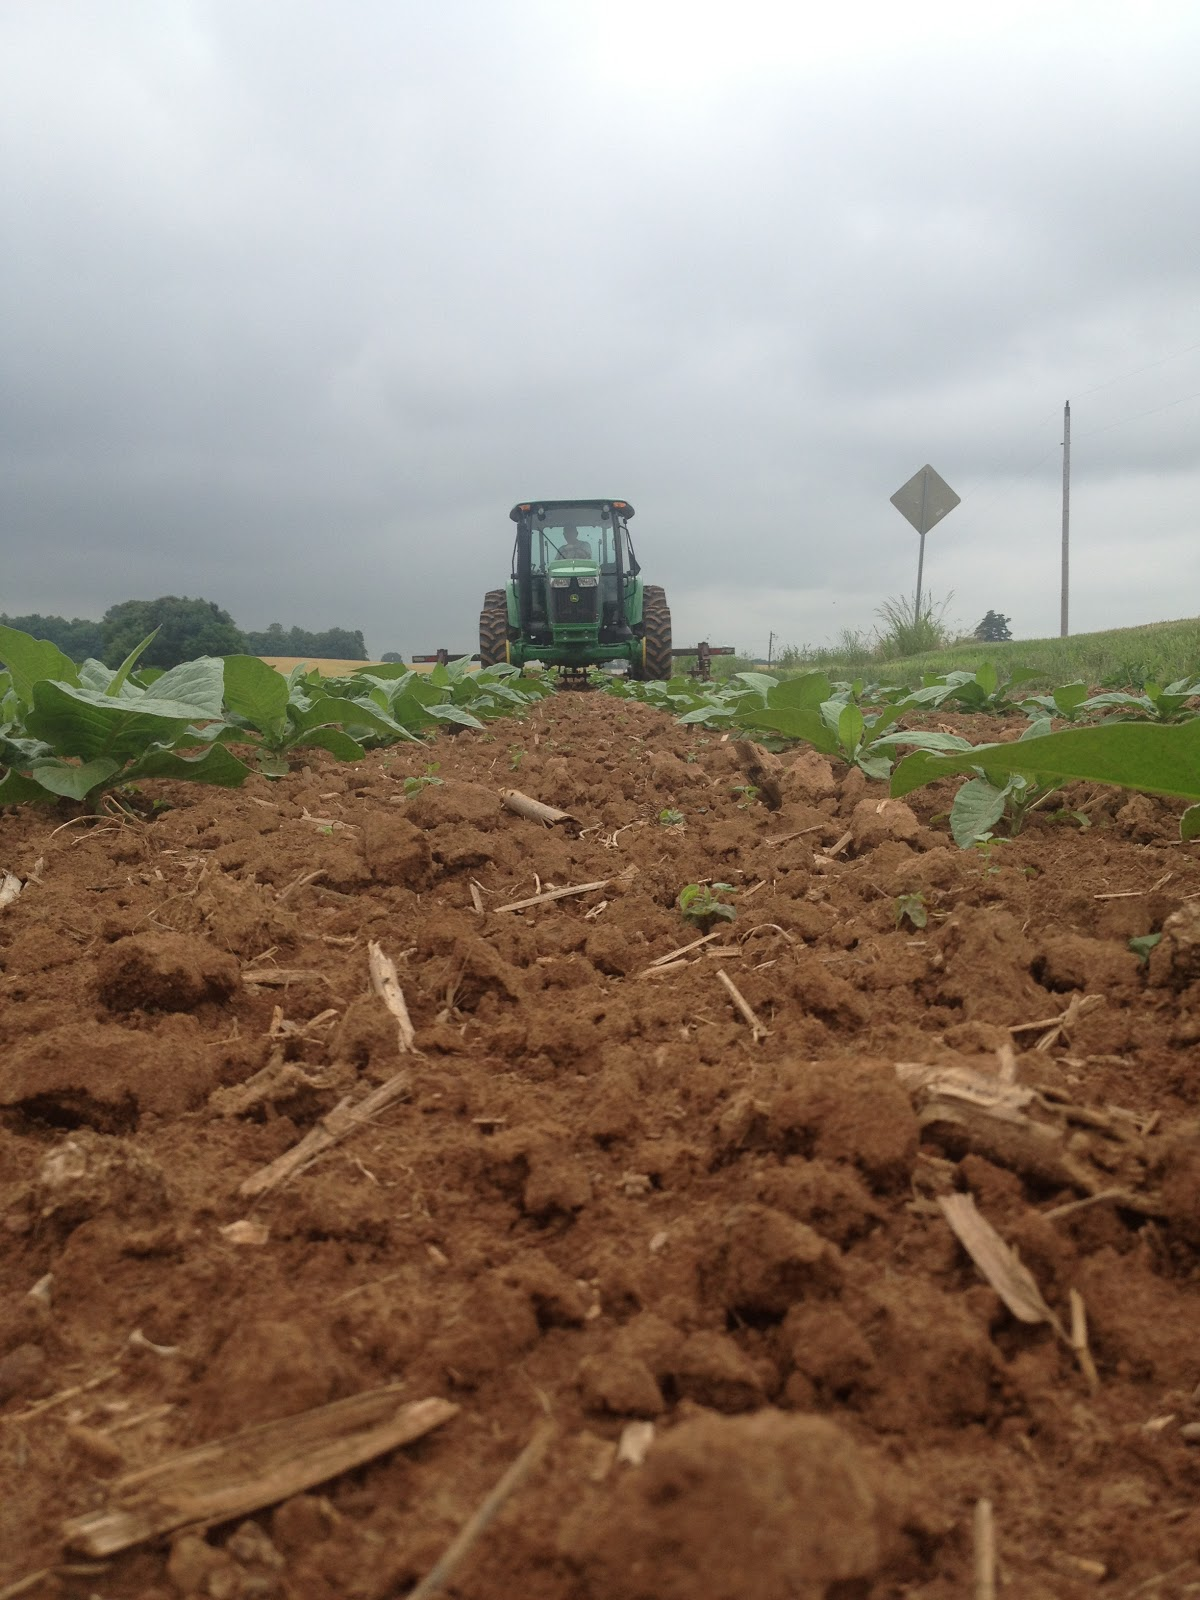 the tobacco is plowed to keep the ground loose and help control weeds